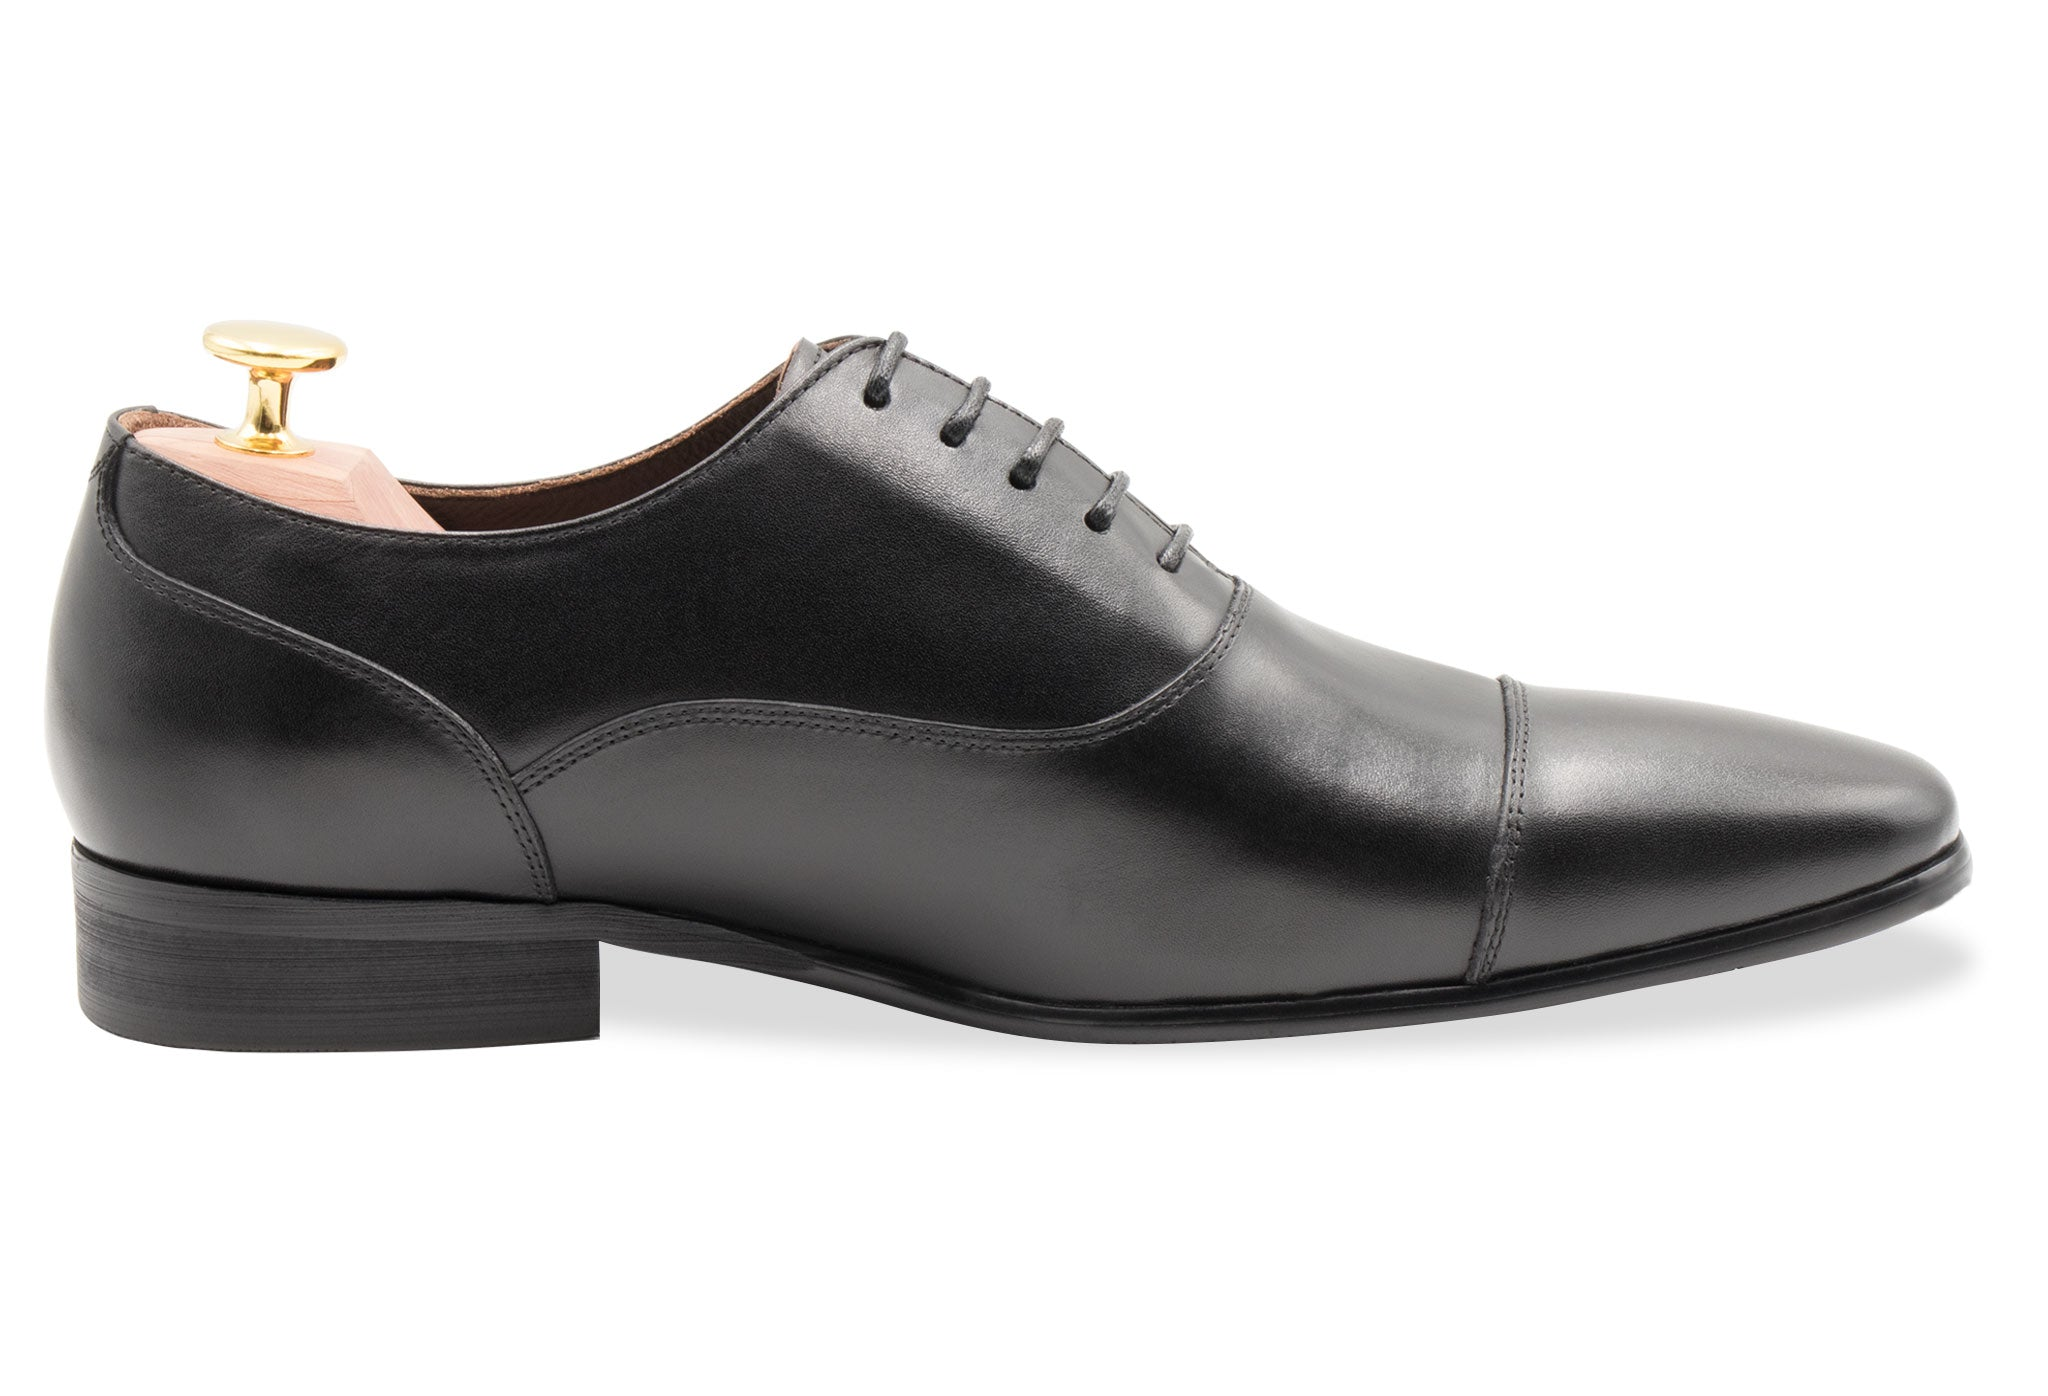 Calafate Straight Cap Black Oxford Leather Shoes